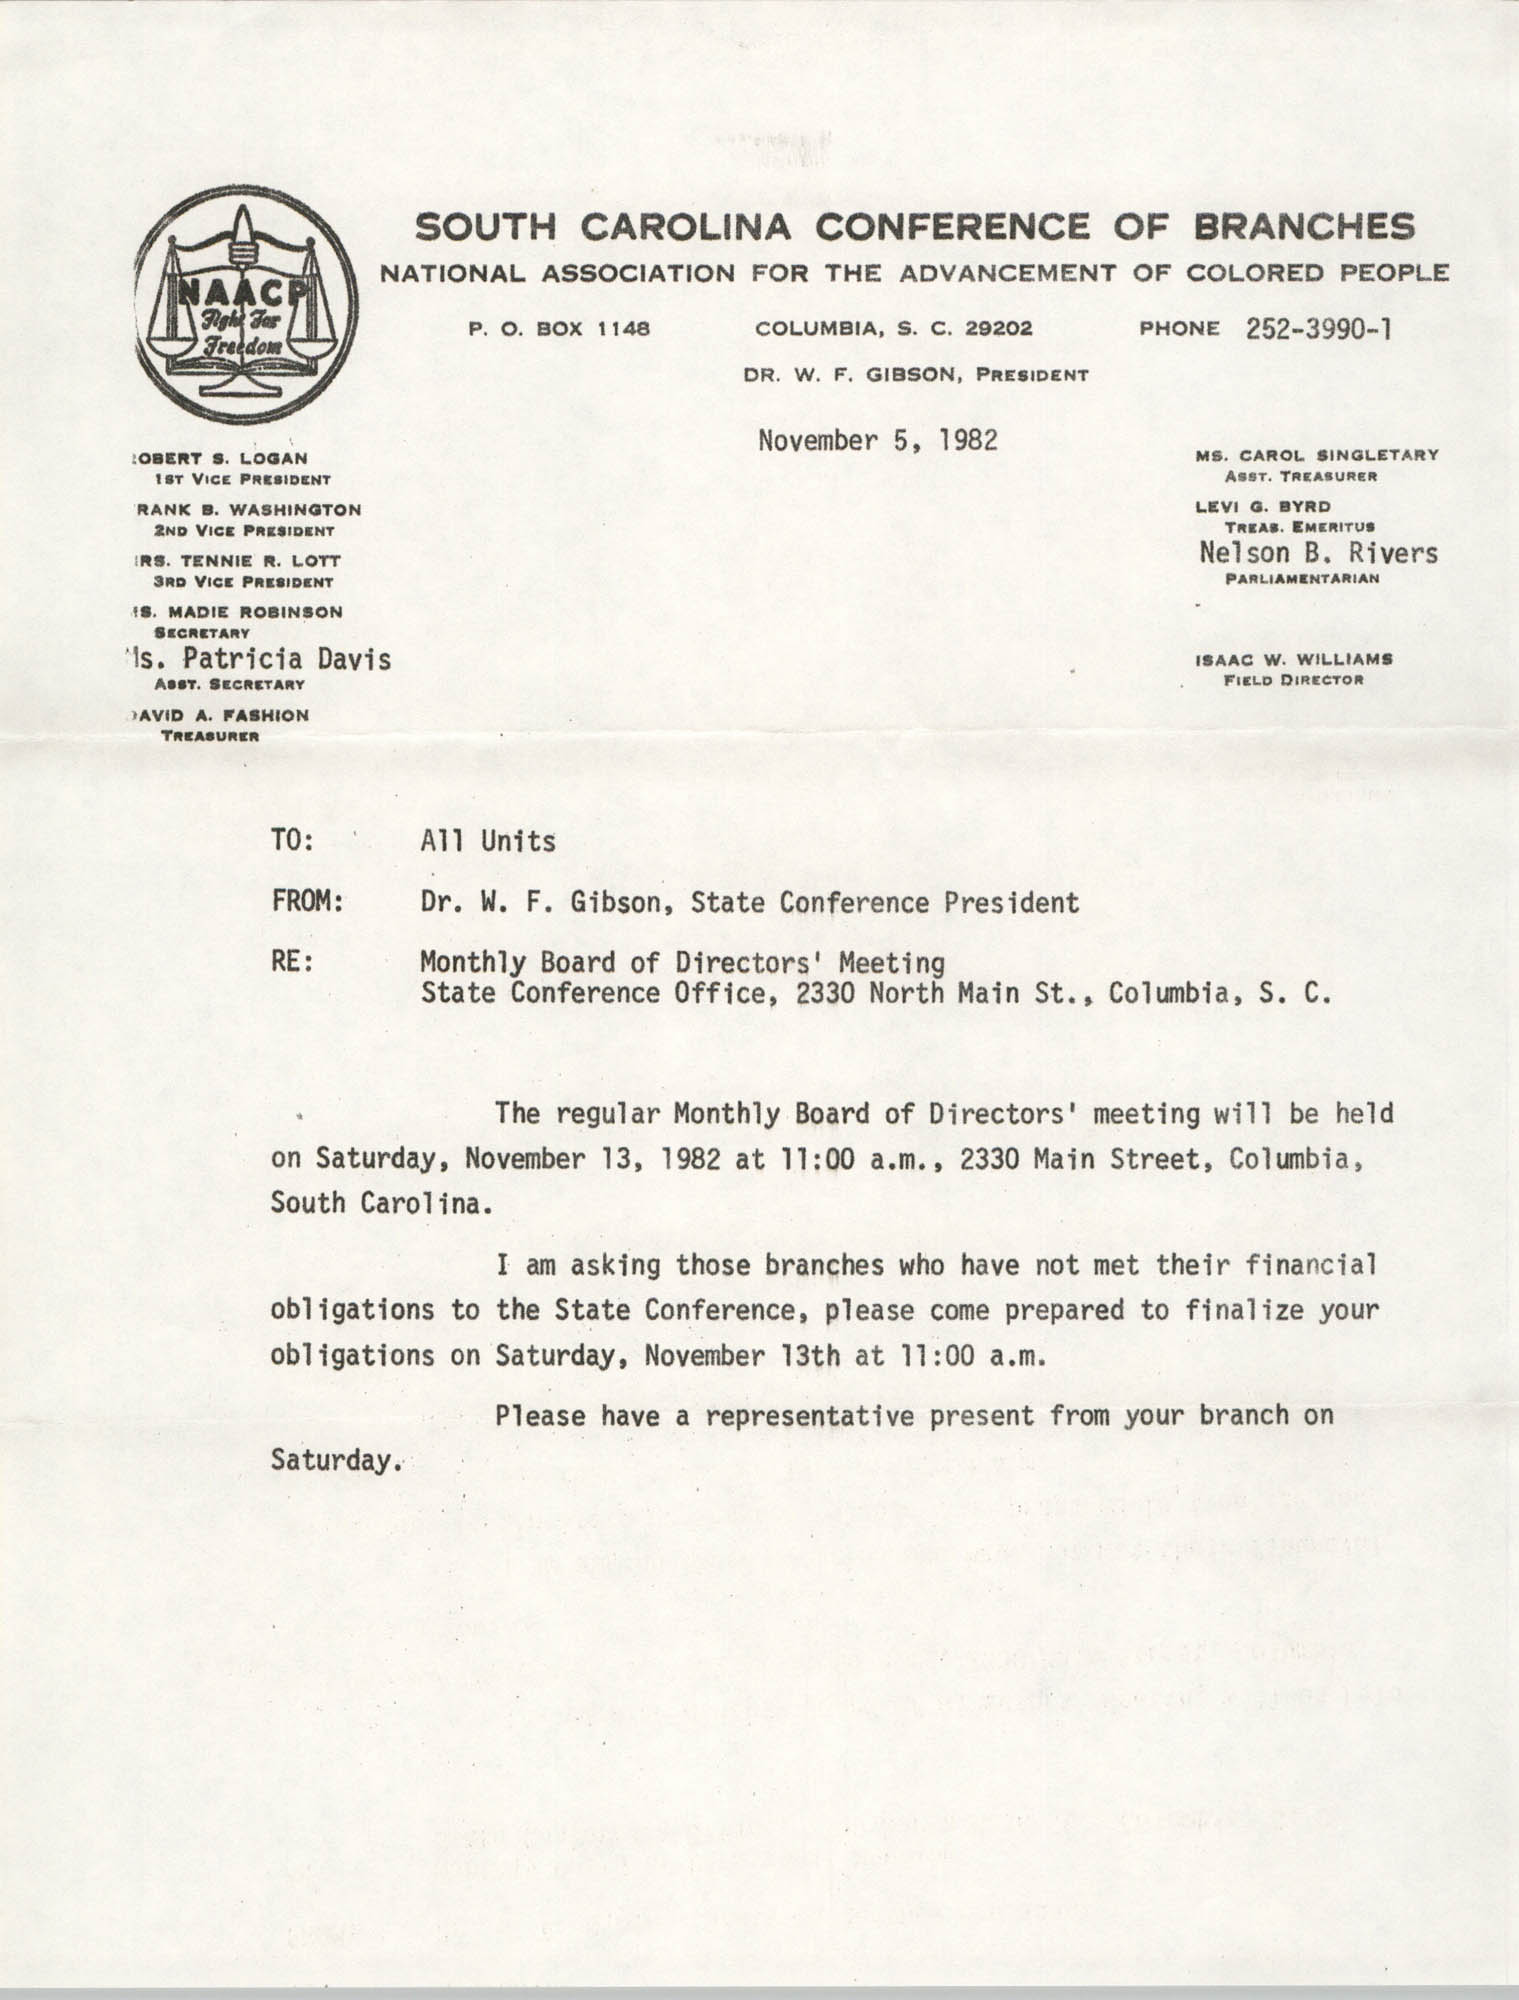 South Carolina Conference of Branches of the NAACP Memorandum, November 5, 1982